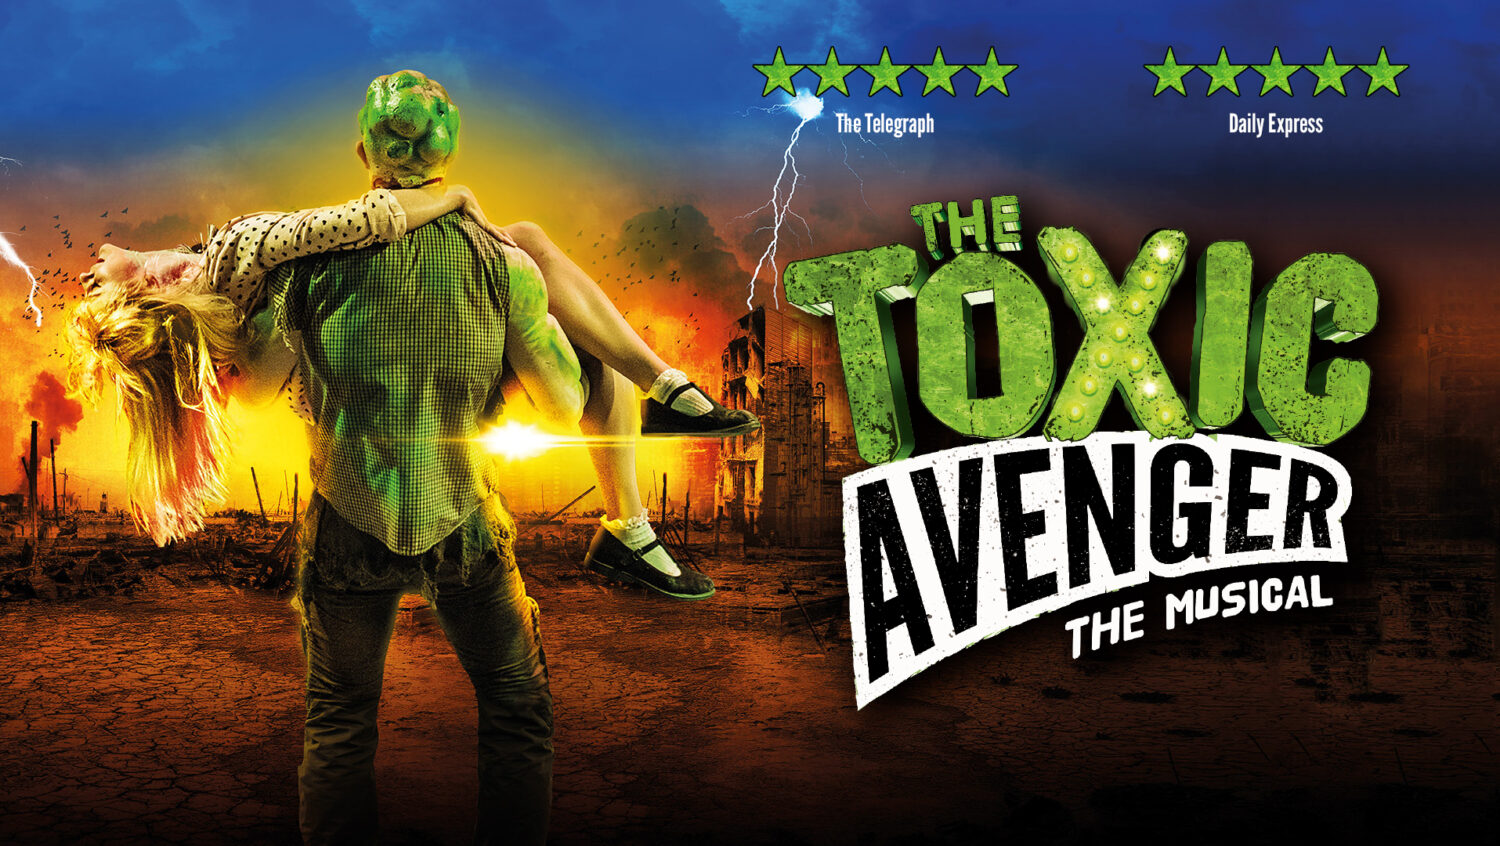 The Toxic Avenger - Stream now on Stage 2 View